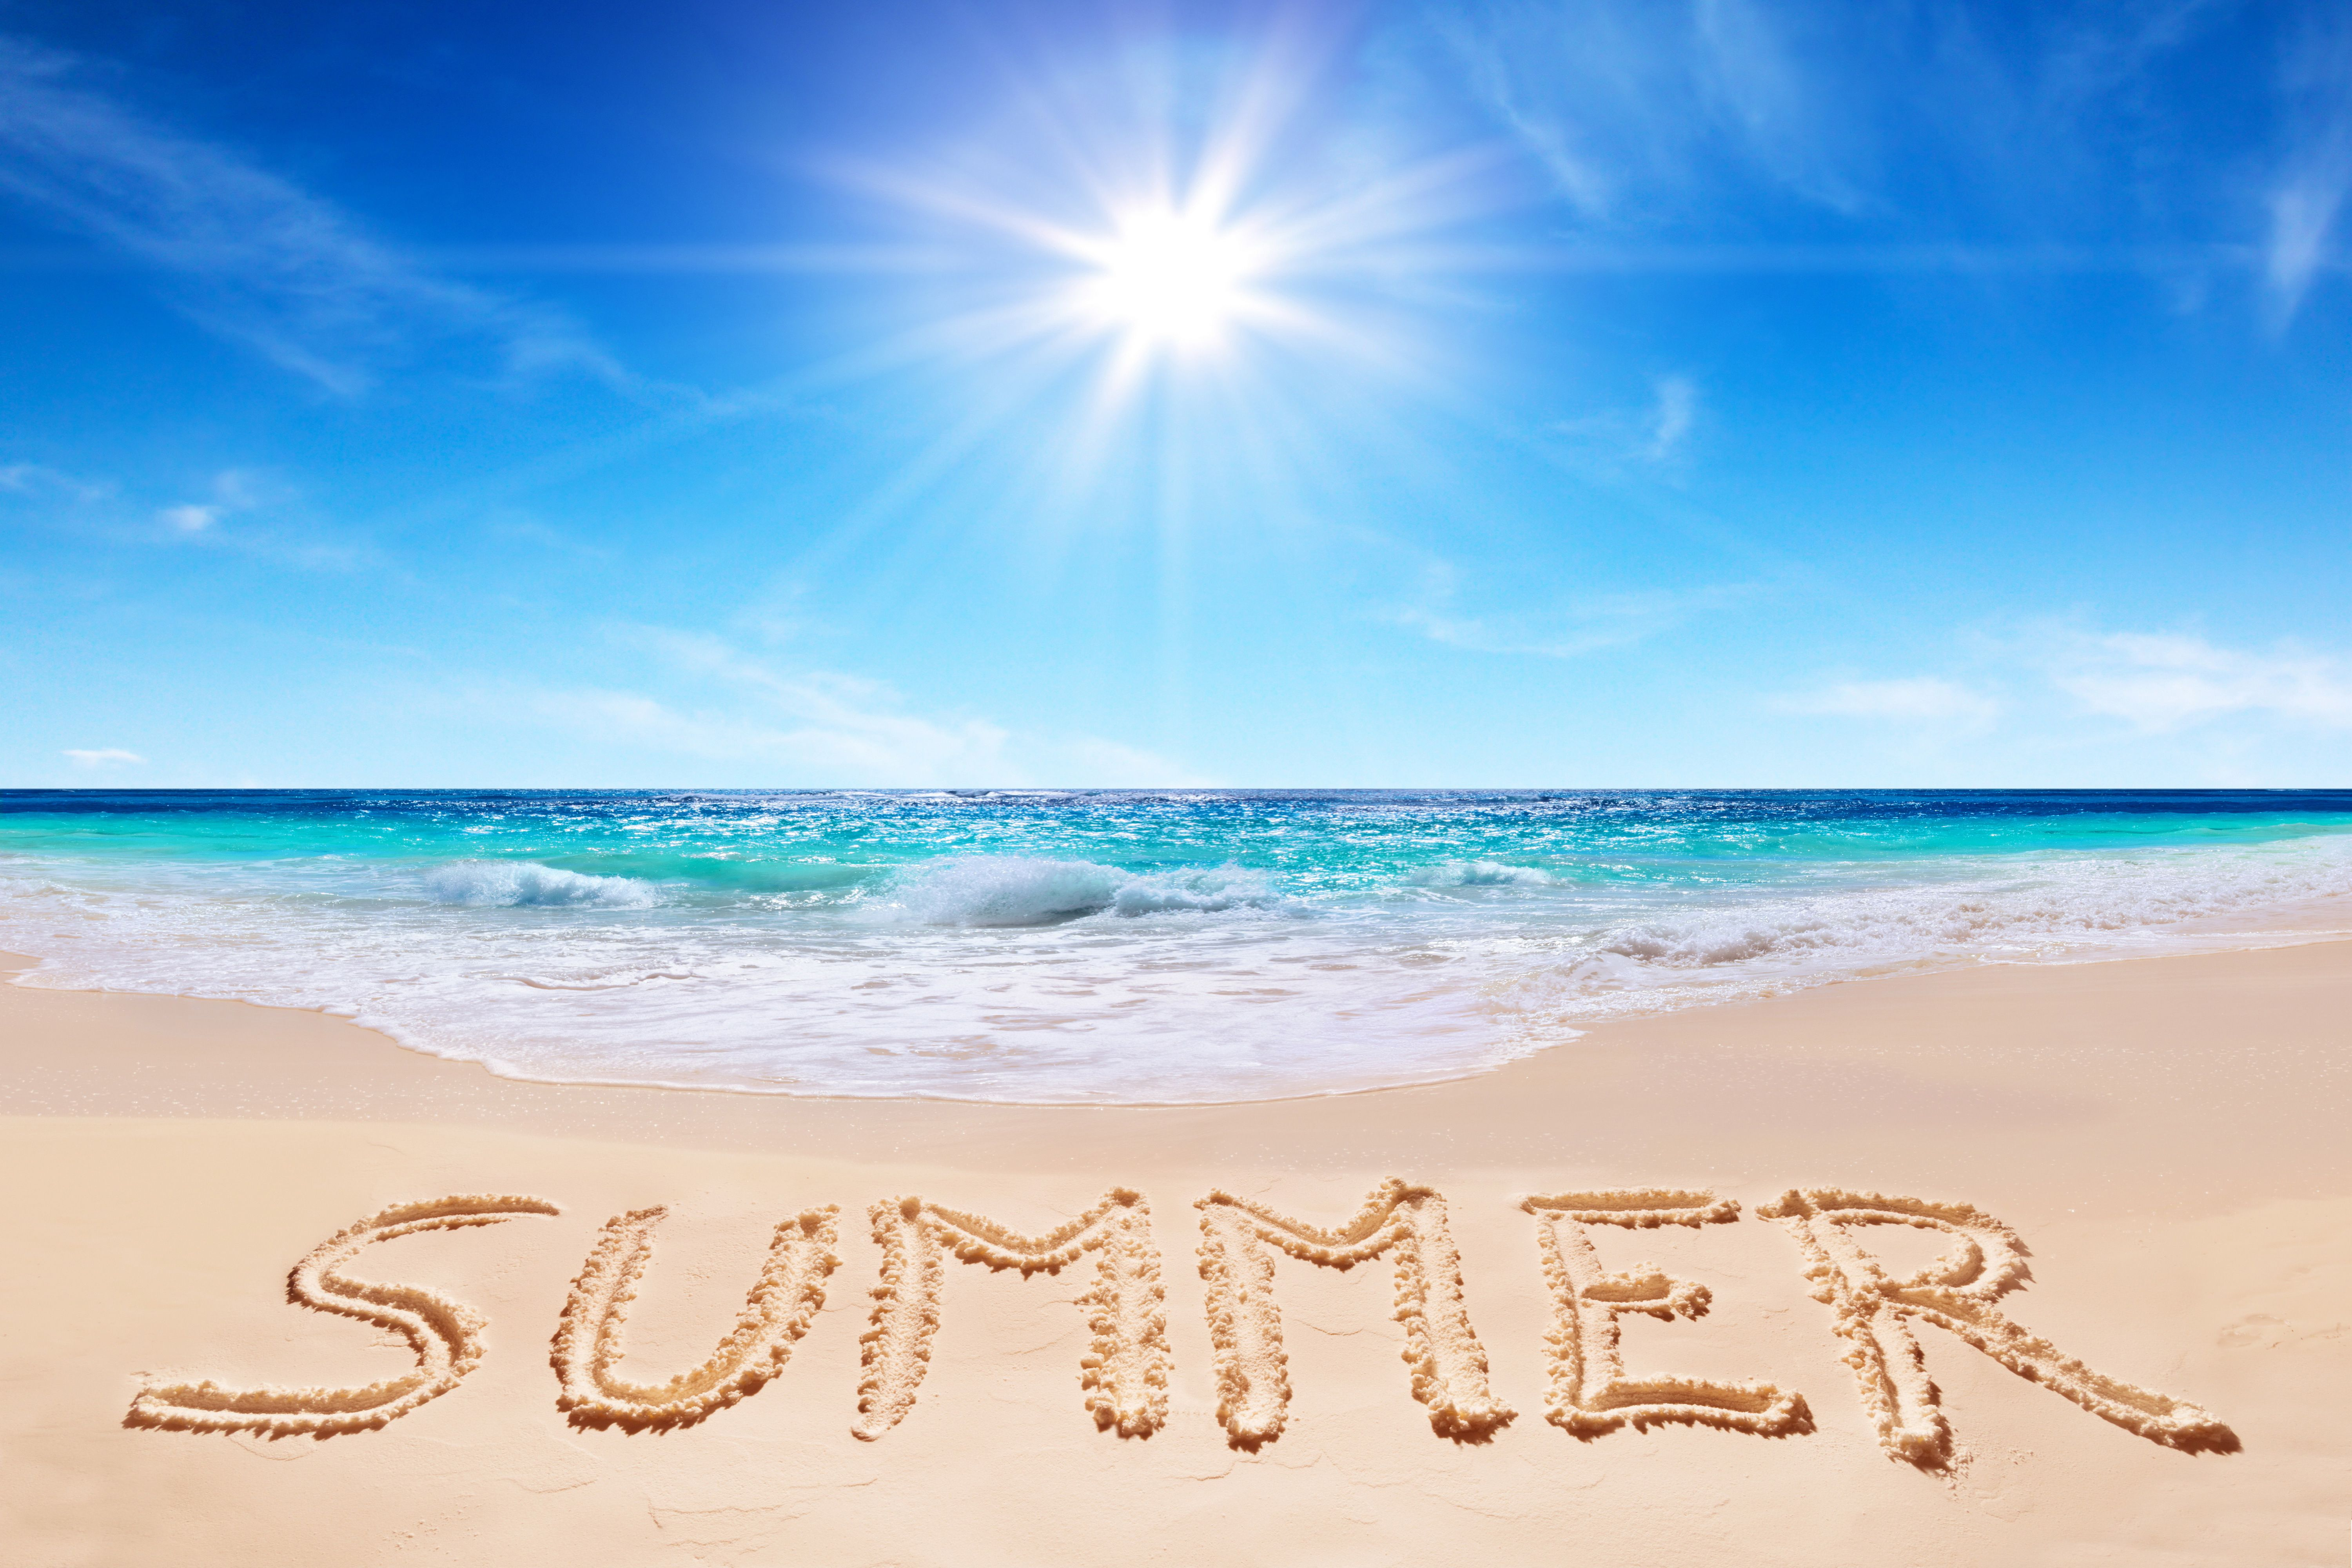 download 12 Best Summer Wallpapers of 2021 [6000x4000] for 6000x4000